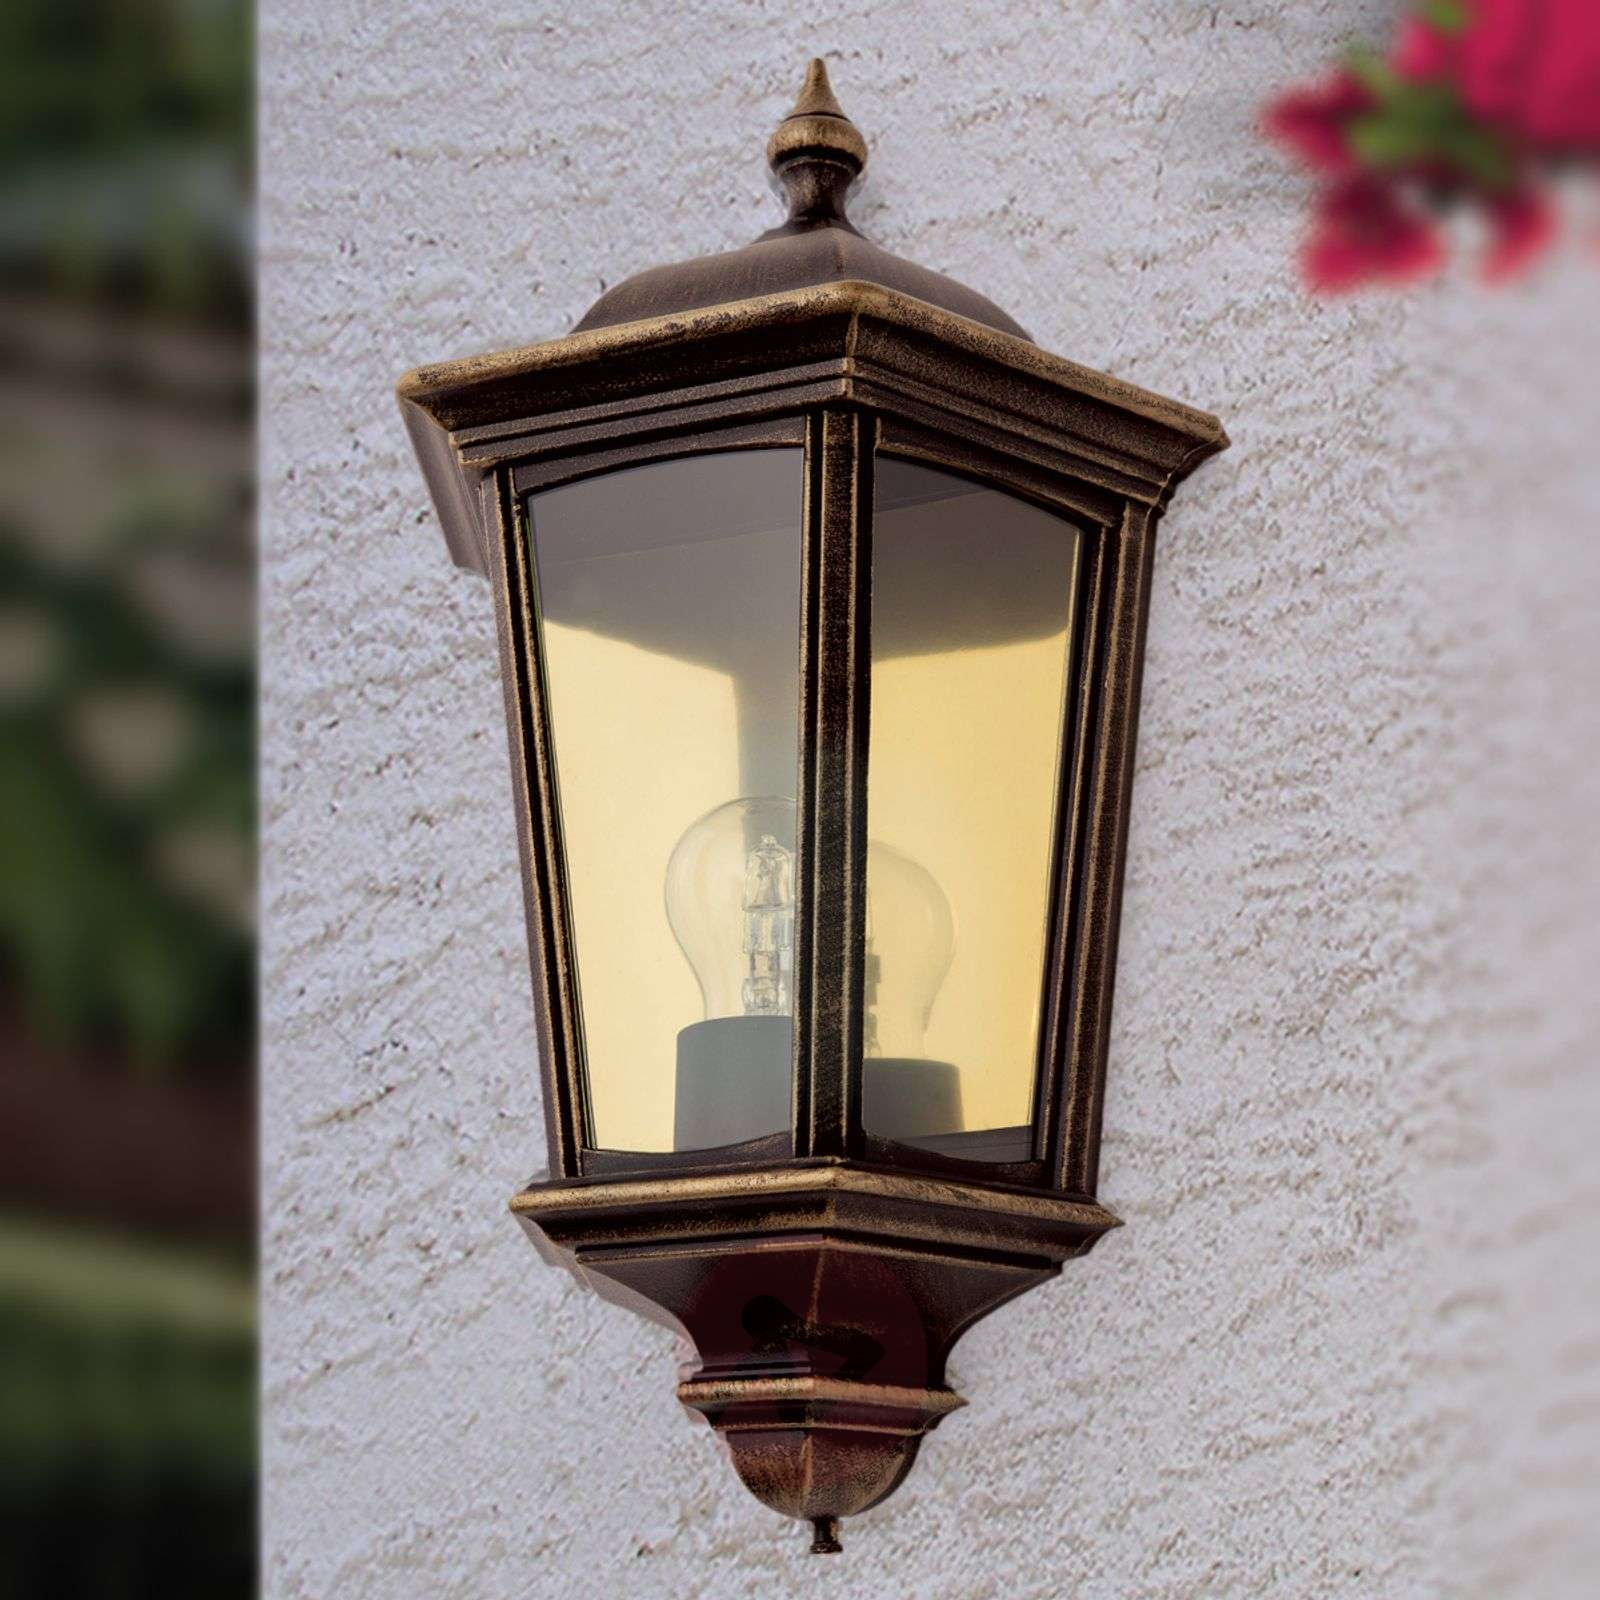 Vintage Reclaimed Wall Lights : Fabio Outside Wall Light Antique Direct Lights.co.uk